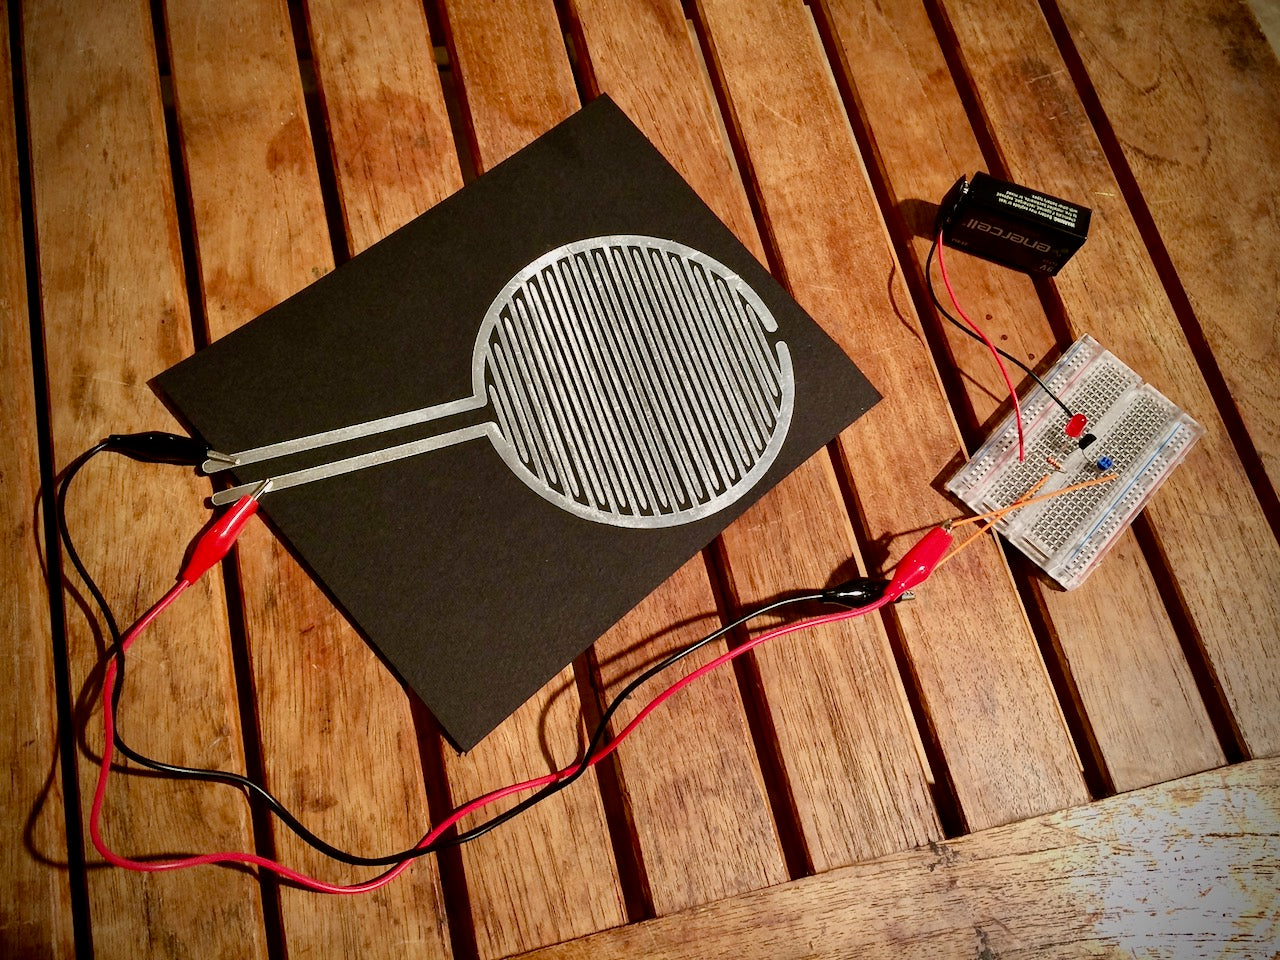 Giant Touch Sensor Circuit with Tin Foil and Silhouette Cameo